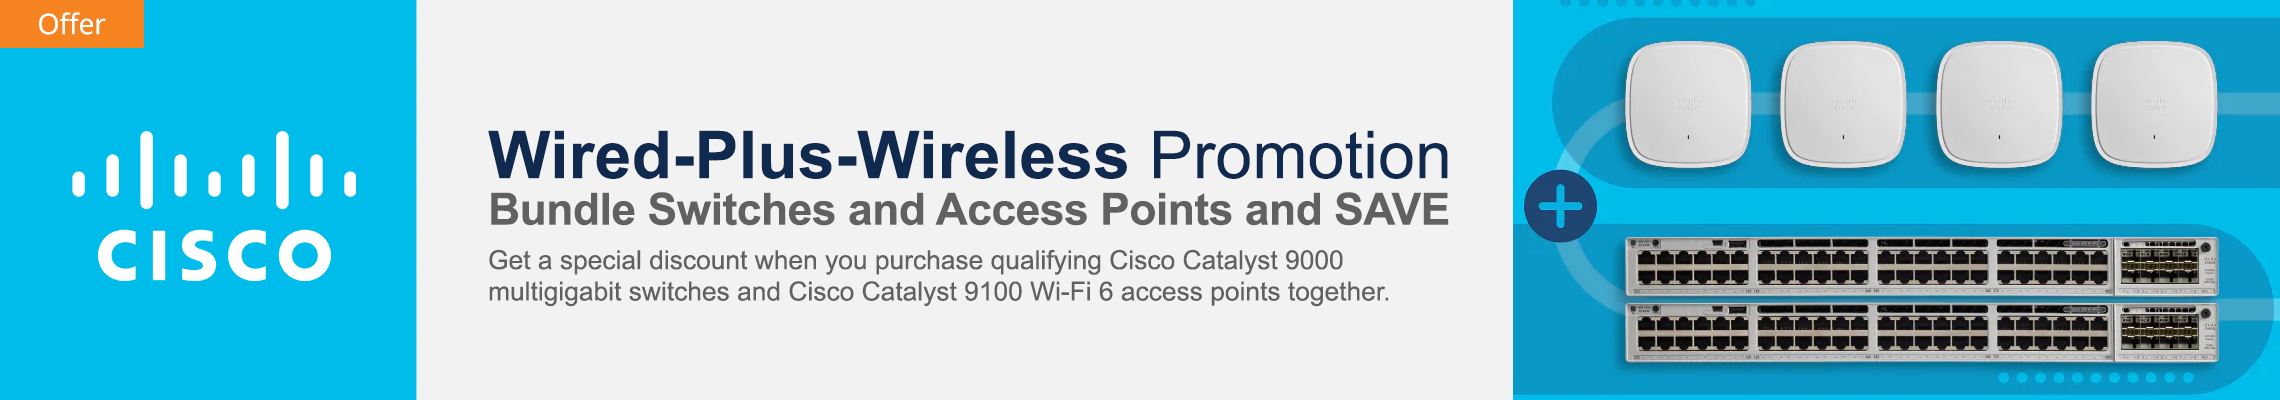 Cisco Wired + Wireless Promotional Banner